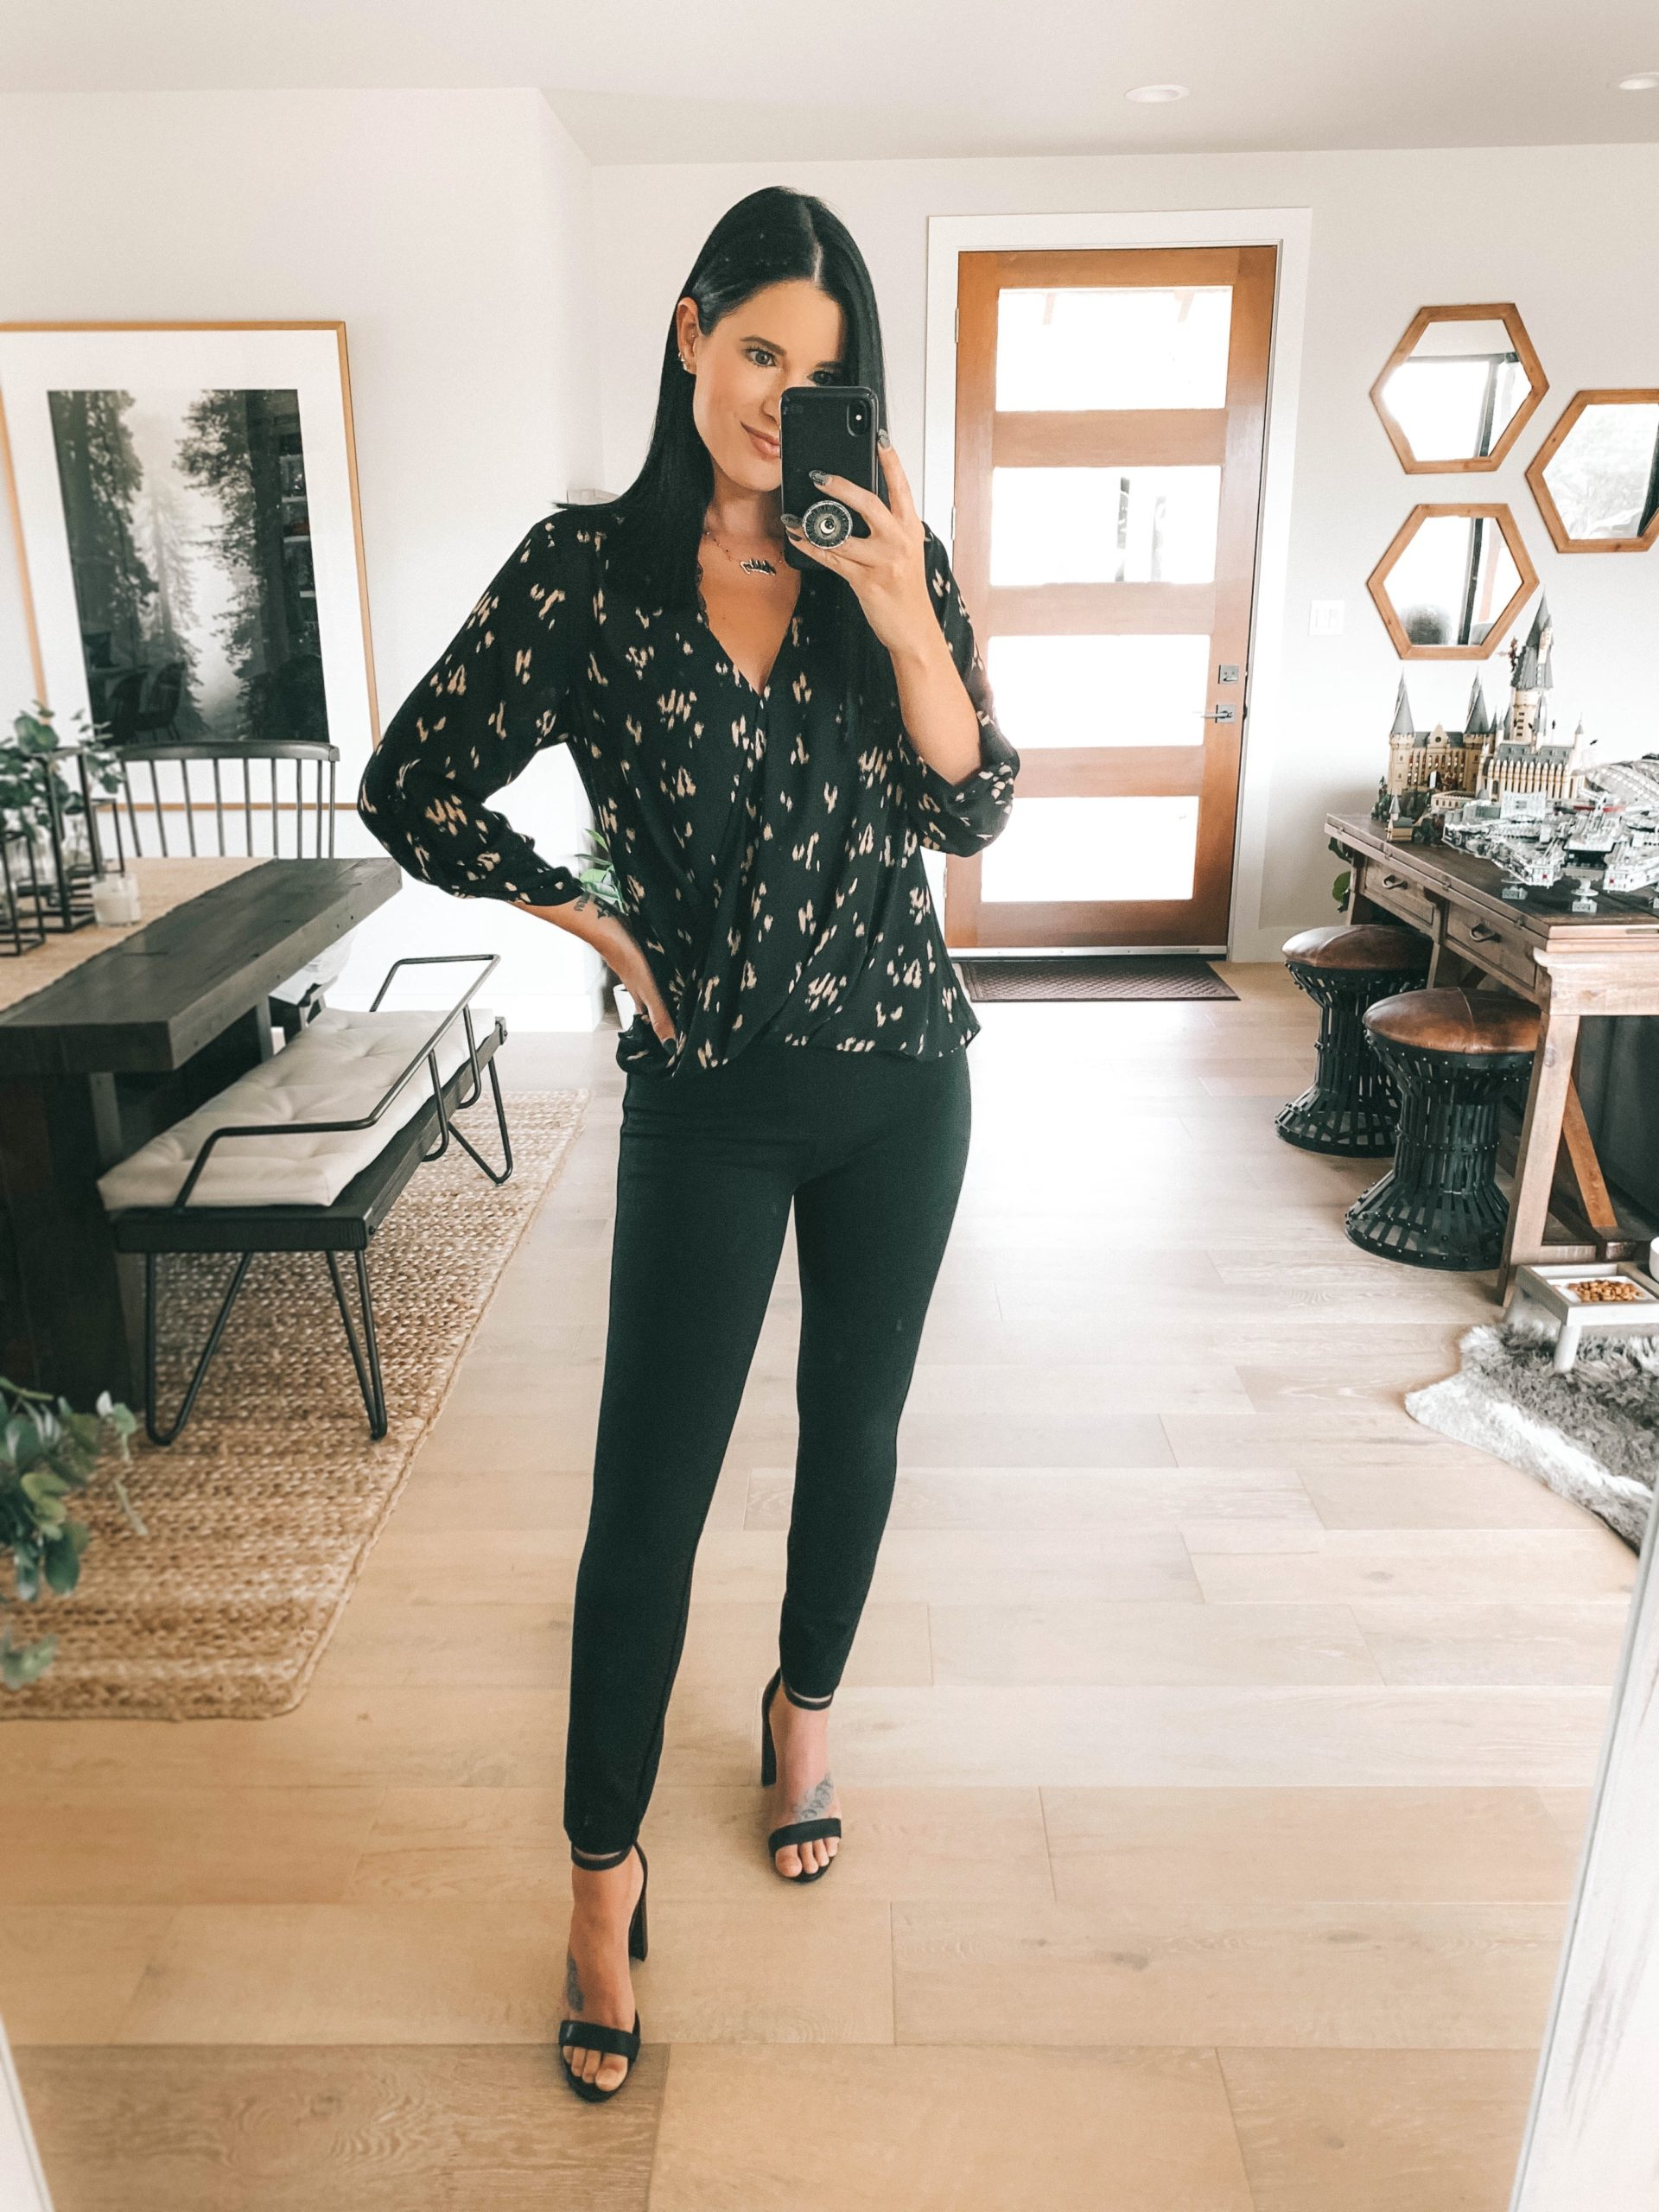 Nordstrom Anniversary Sale by popular Austin fashion blog, Dressed to Kill: image of a woman wearing a black long sleeve blouse, black faux leather leggings, and black block heel sandals.